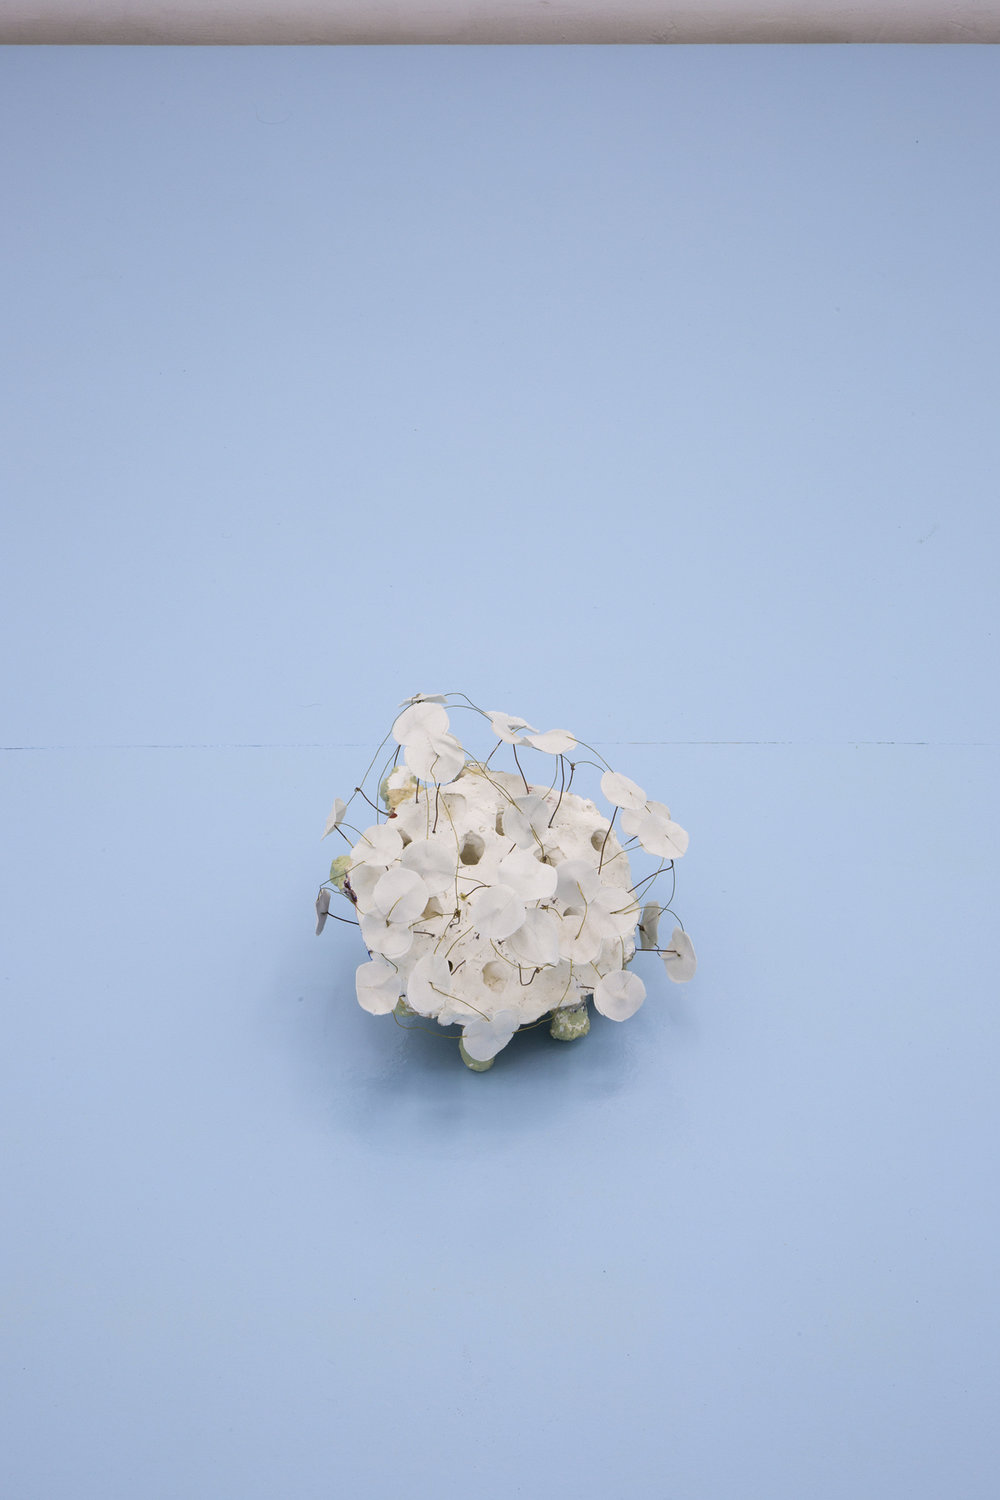 Copy of Miho Dohi, Buttai 24, 2013.  Plaster, copper, cloth and acrylic, h20 x w25 x d25 cm (7.87 x 9.84 x 9.84 in.)